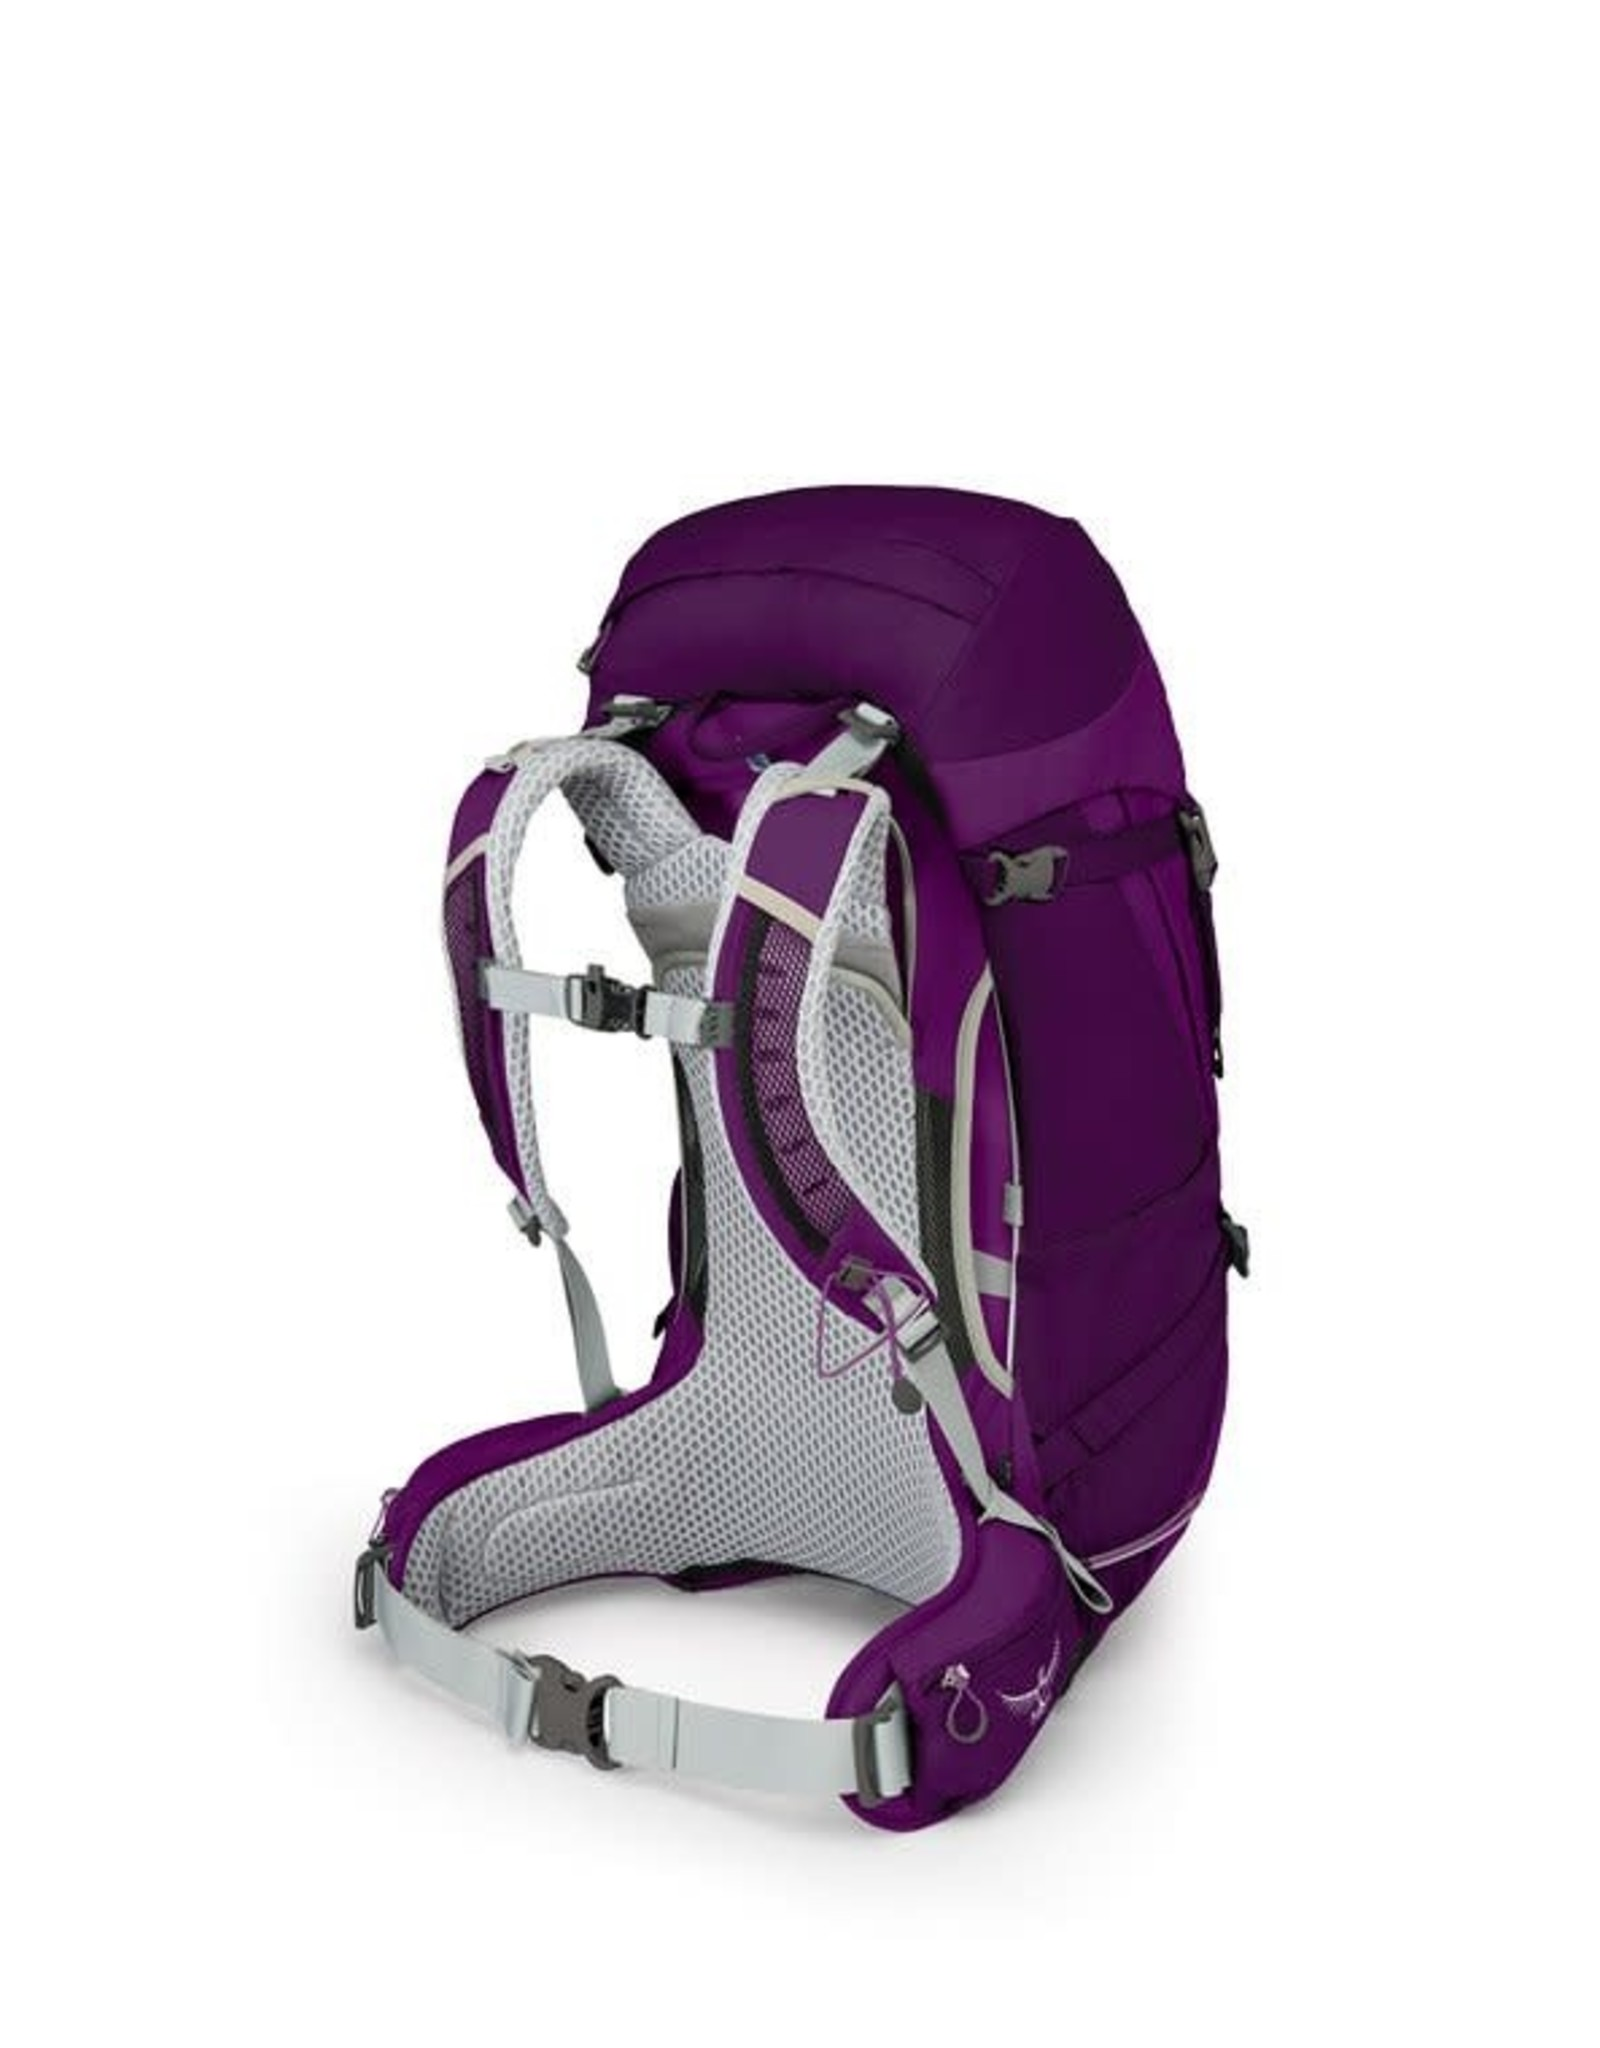 Osprey Osprey Sirrus 36 Women's Backpack Ruska Purple S/M